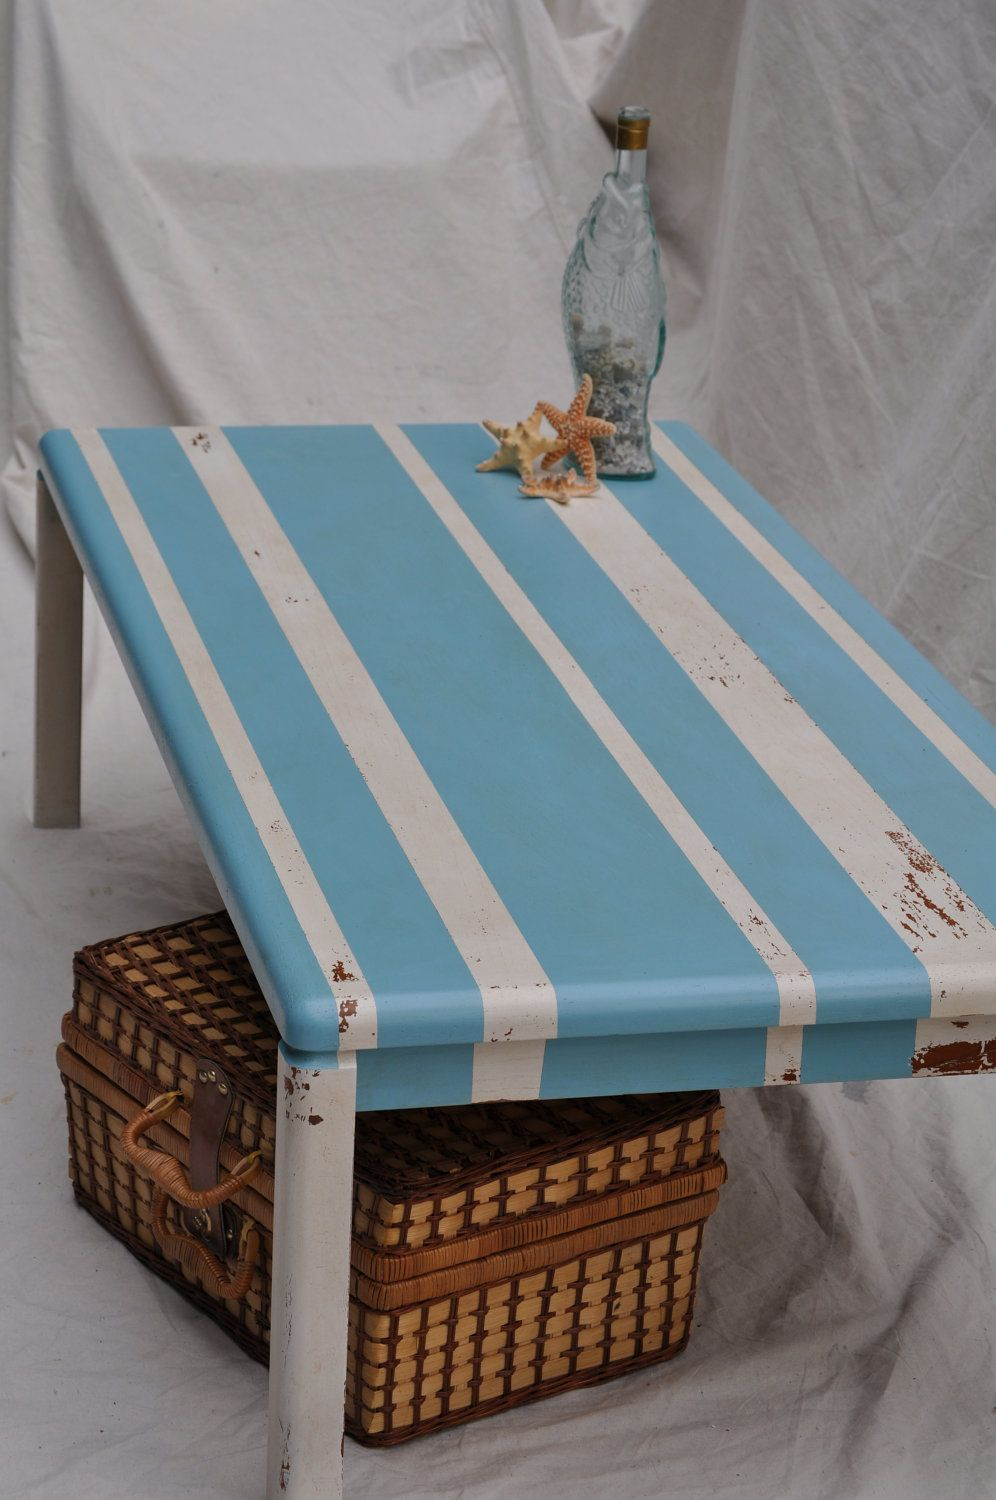 Distressed Coffee Table Shabby Chic Beachy Blue And White Striped Distressed 175 00 Via Etsy Shabby Chic Coffee Table Distressed Coffee Table Coffee Table